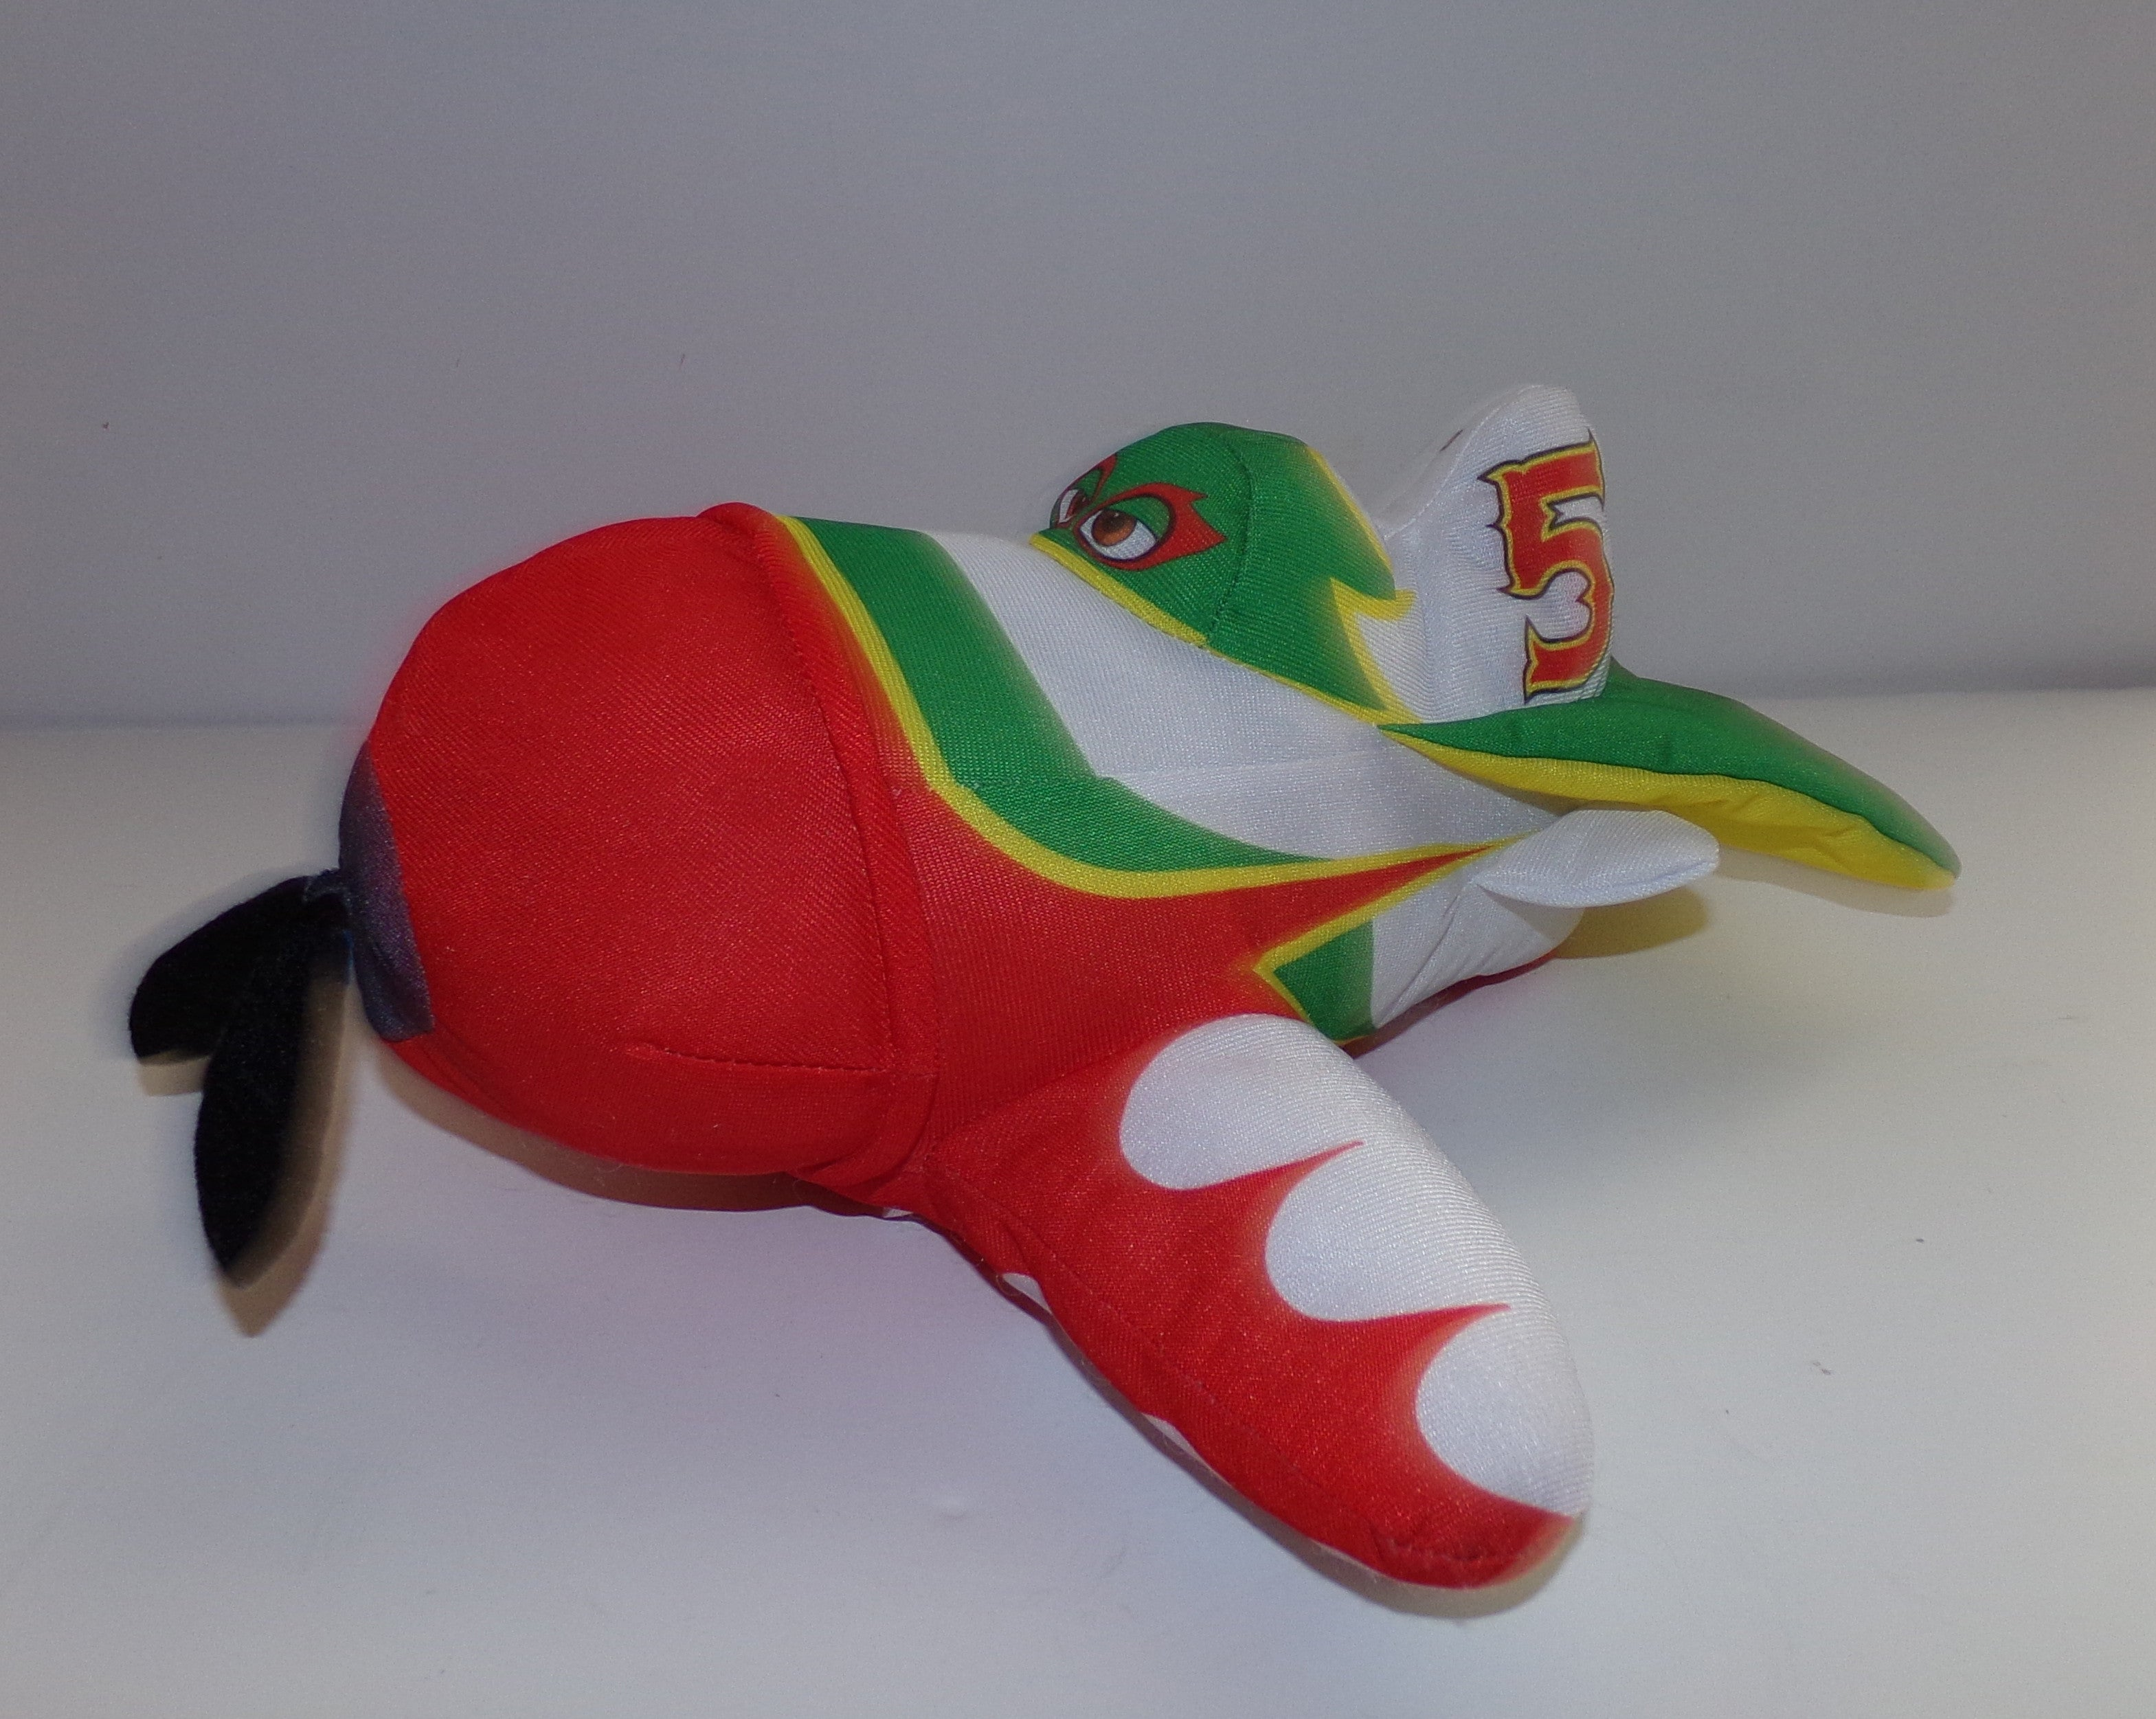 Disney Planes El Chupacabra Talking Plush - We Got Character